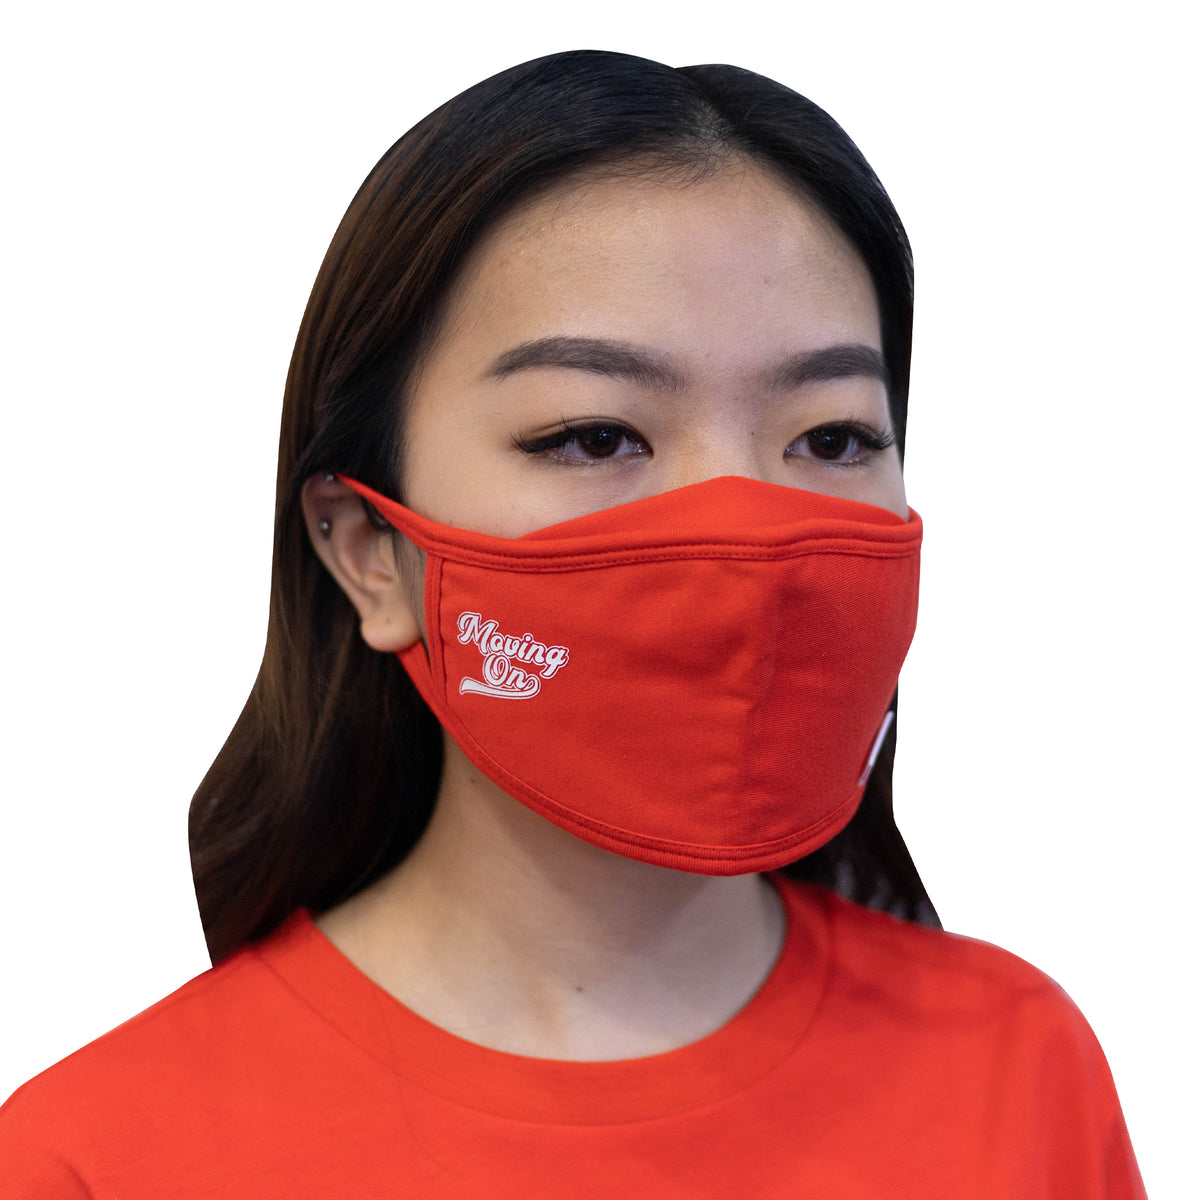 ULTRA A Anti-Bacterial Unisex Tee + 3-Ply Anti-Bacterial Mask Co-Ord Set (Moving On - Adults)